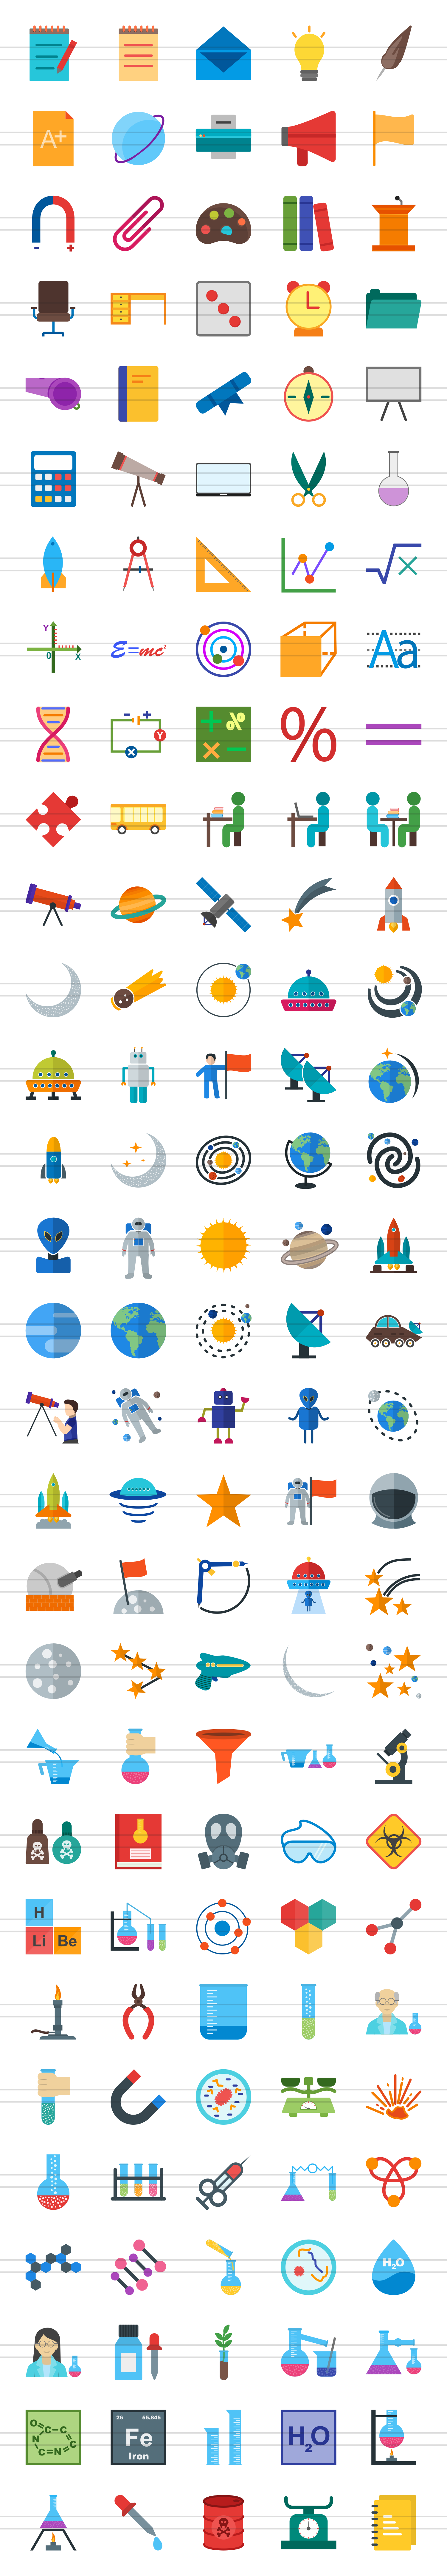 150 Science Flat Icons example image 5